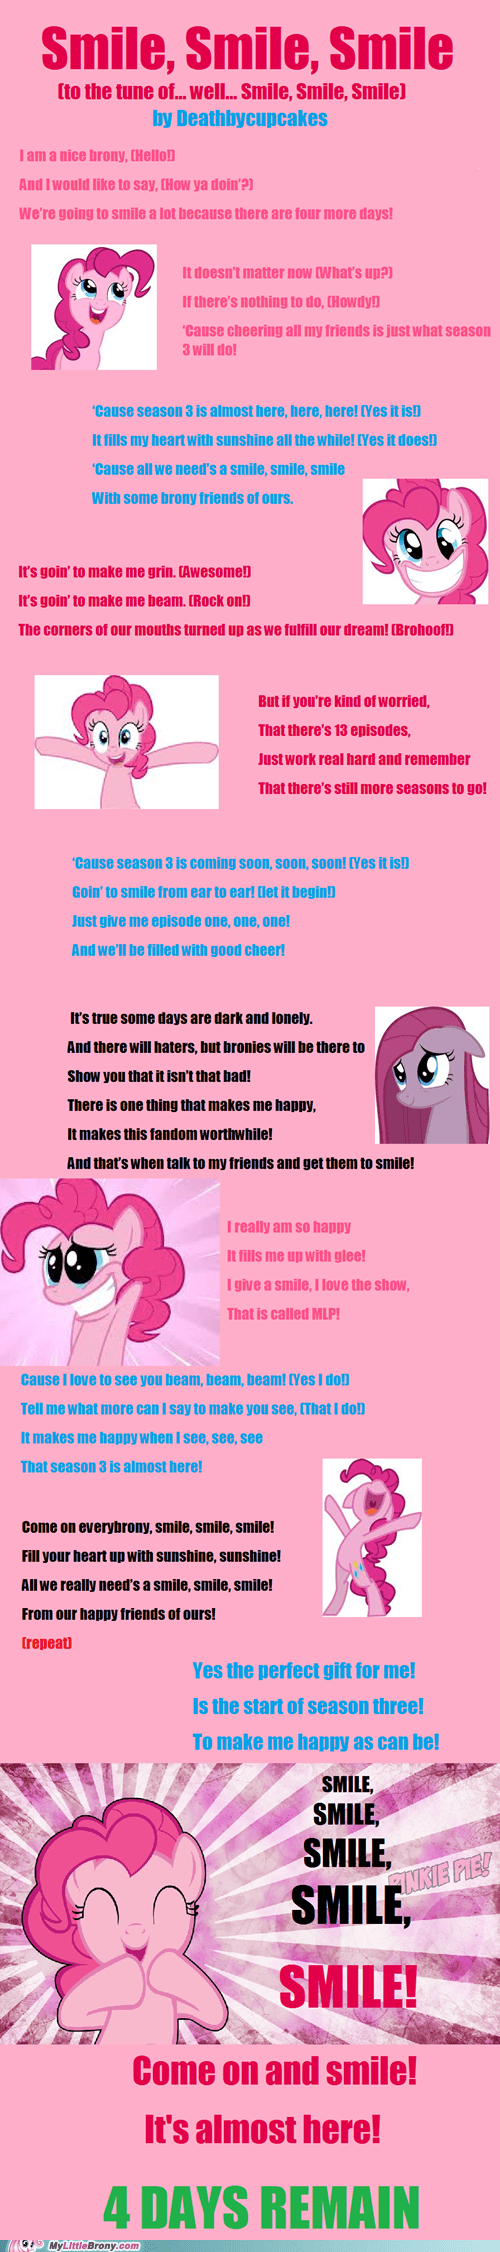 countdown my little brony smile smile smile - 6741771264